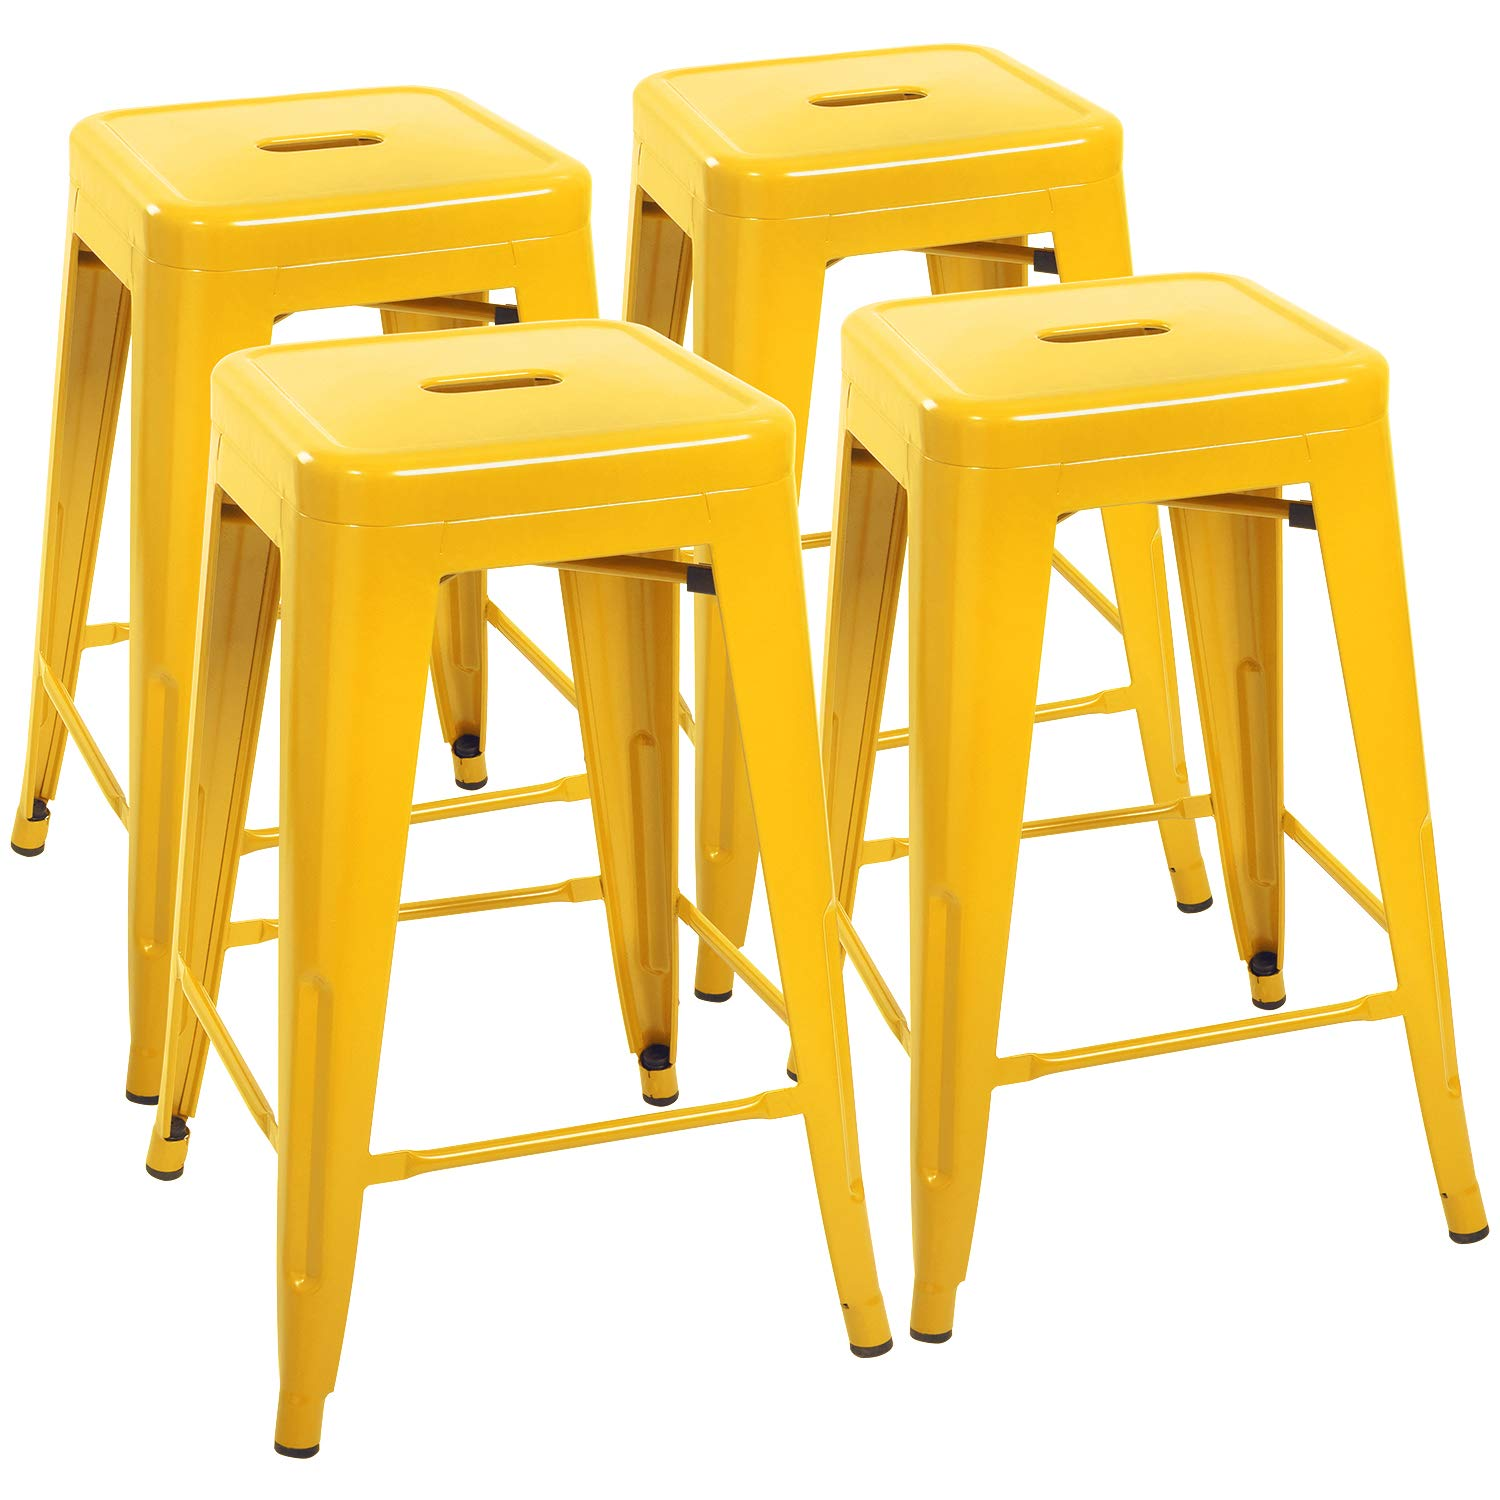 Devoko Metal Bar Stools 24'' Indoor Outdoor Stackable Barstools Modern Style Industrial Vintage Counter Bar Stools Set of 4 (Yellow) by Devoko